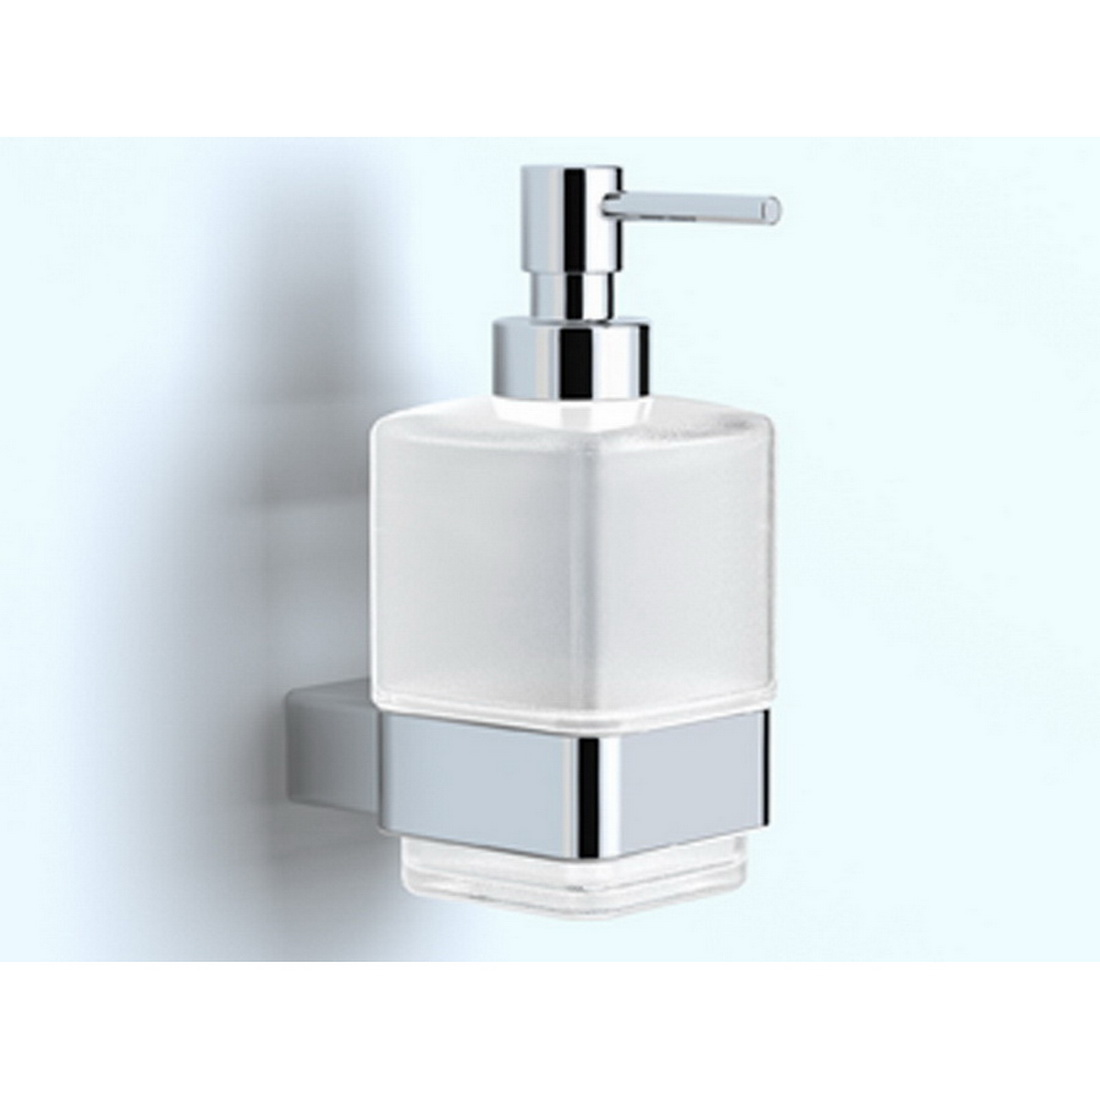 Studio 1 Collection Soap Dispenser Chrome Plated